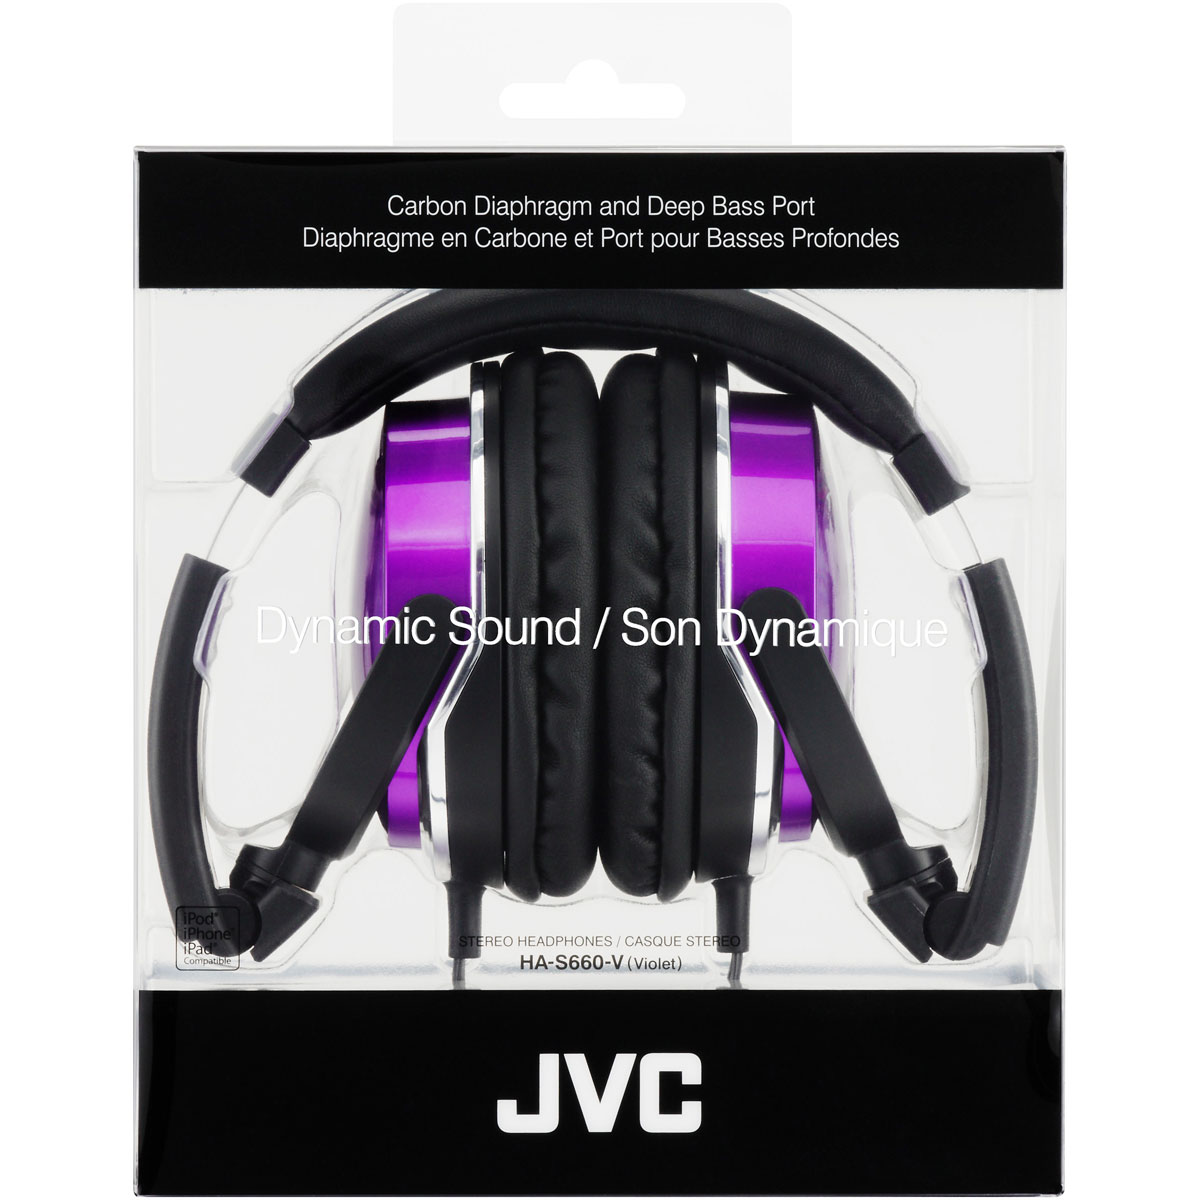 jvc ha s660 violet casque jvc sur. Black Bedroom Furniture Sets. Home Design Ideas